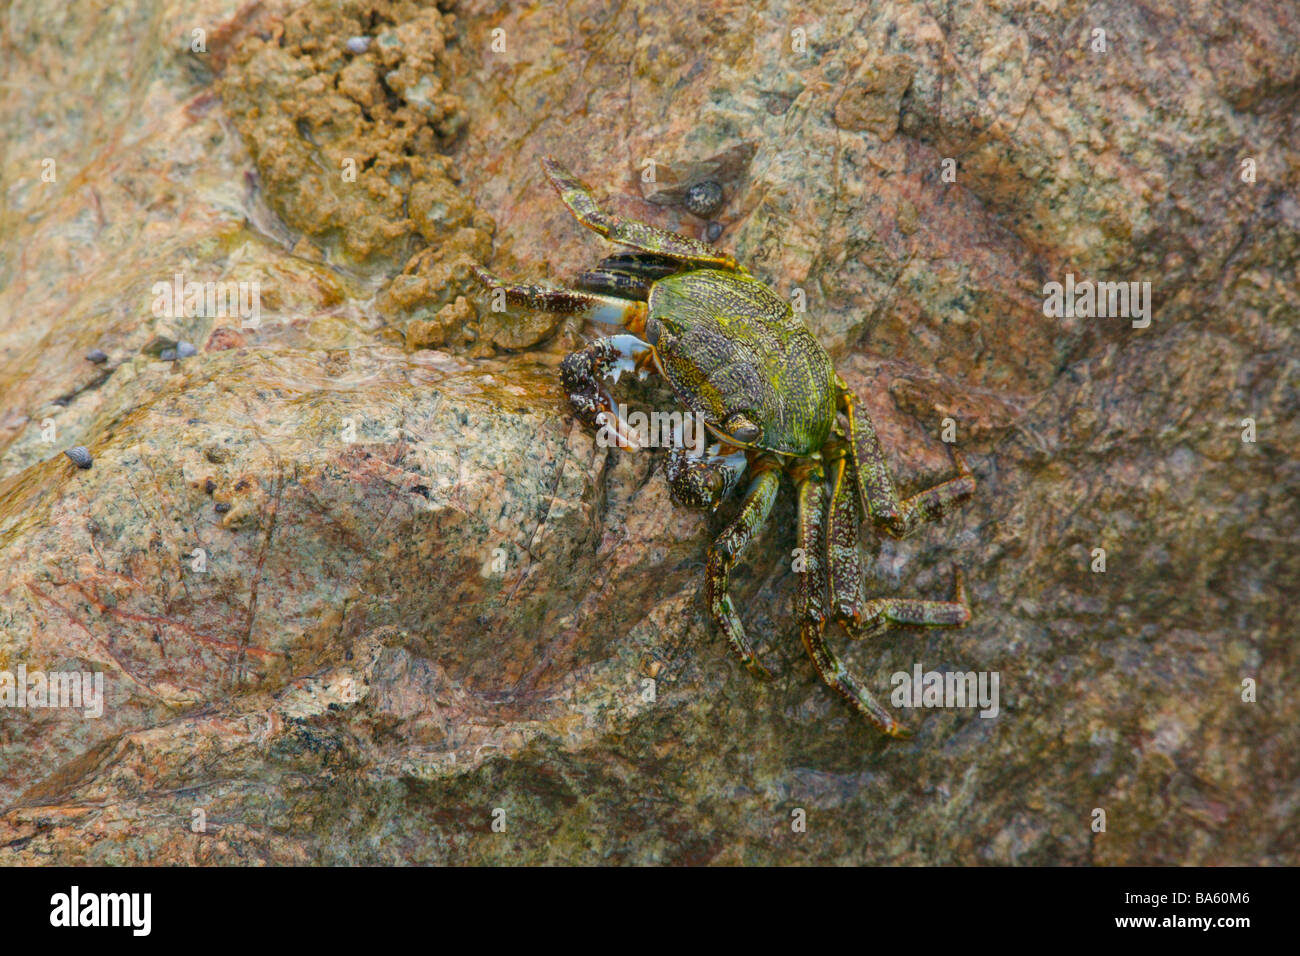 Jumping crab on a rock found in West Coast of Barbados beach near 'St. Lawrence Gap' - Stock Image